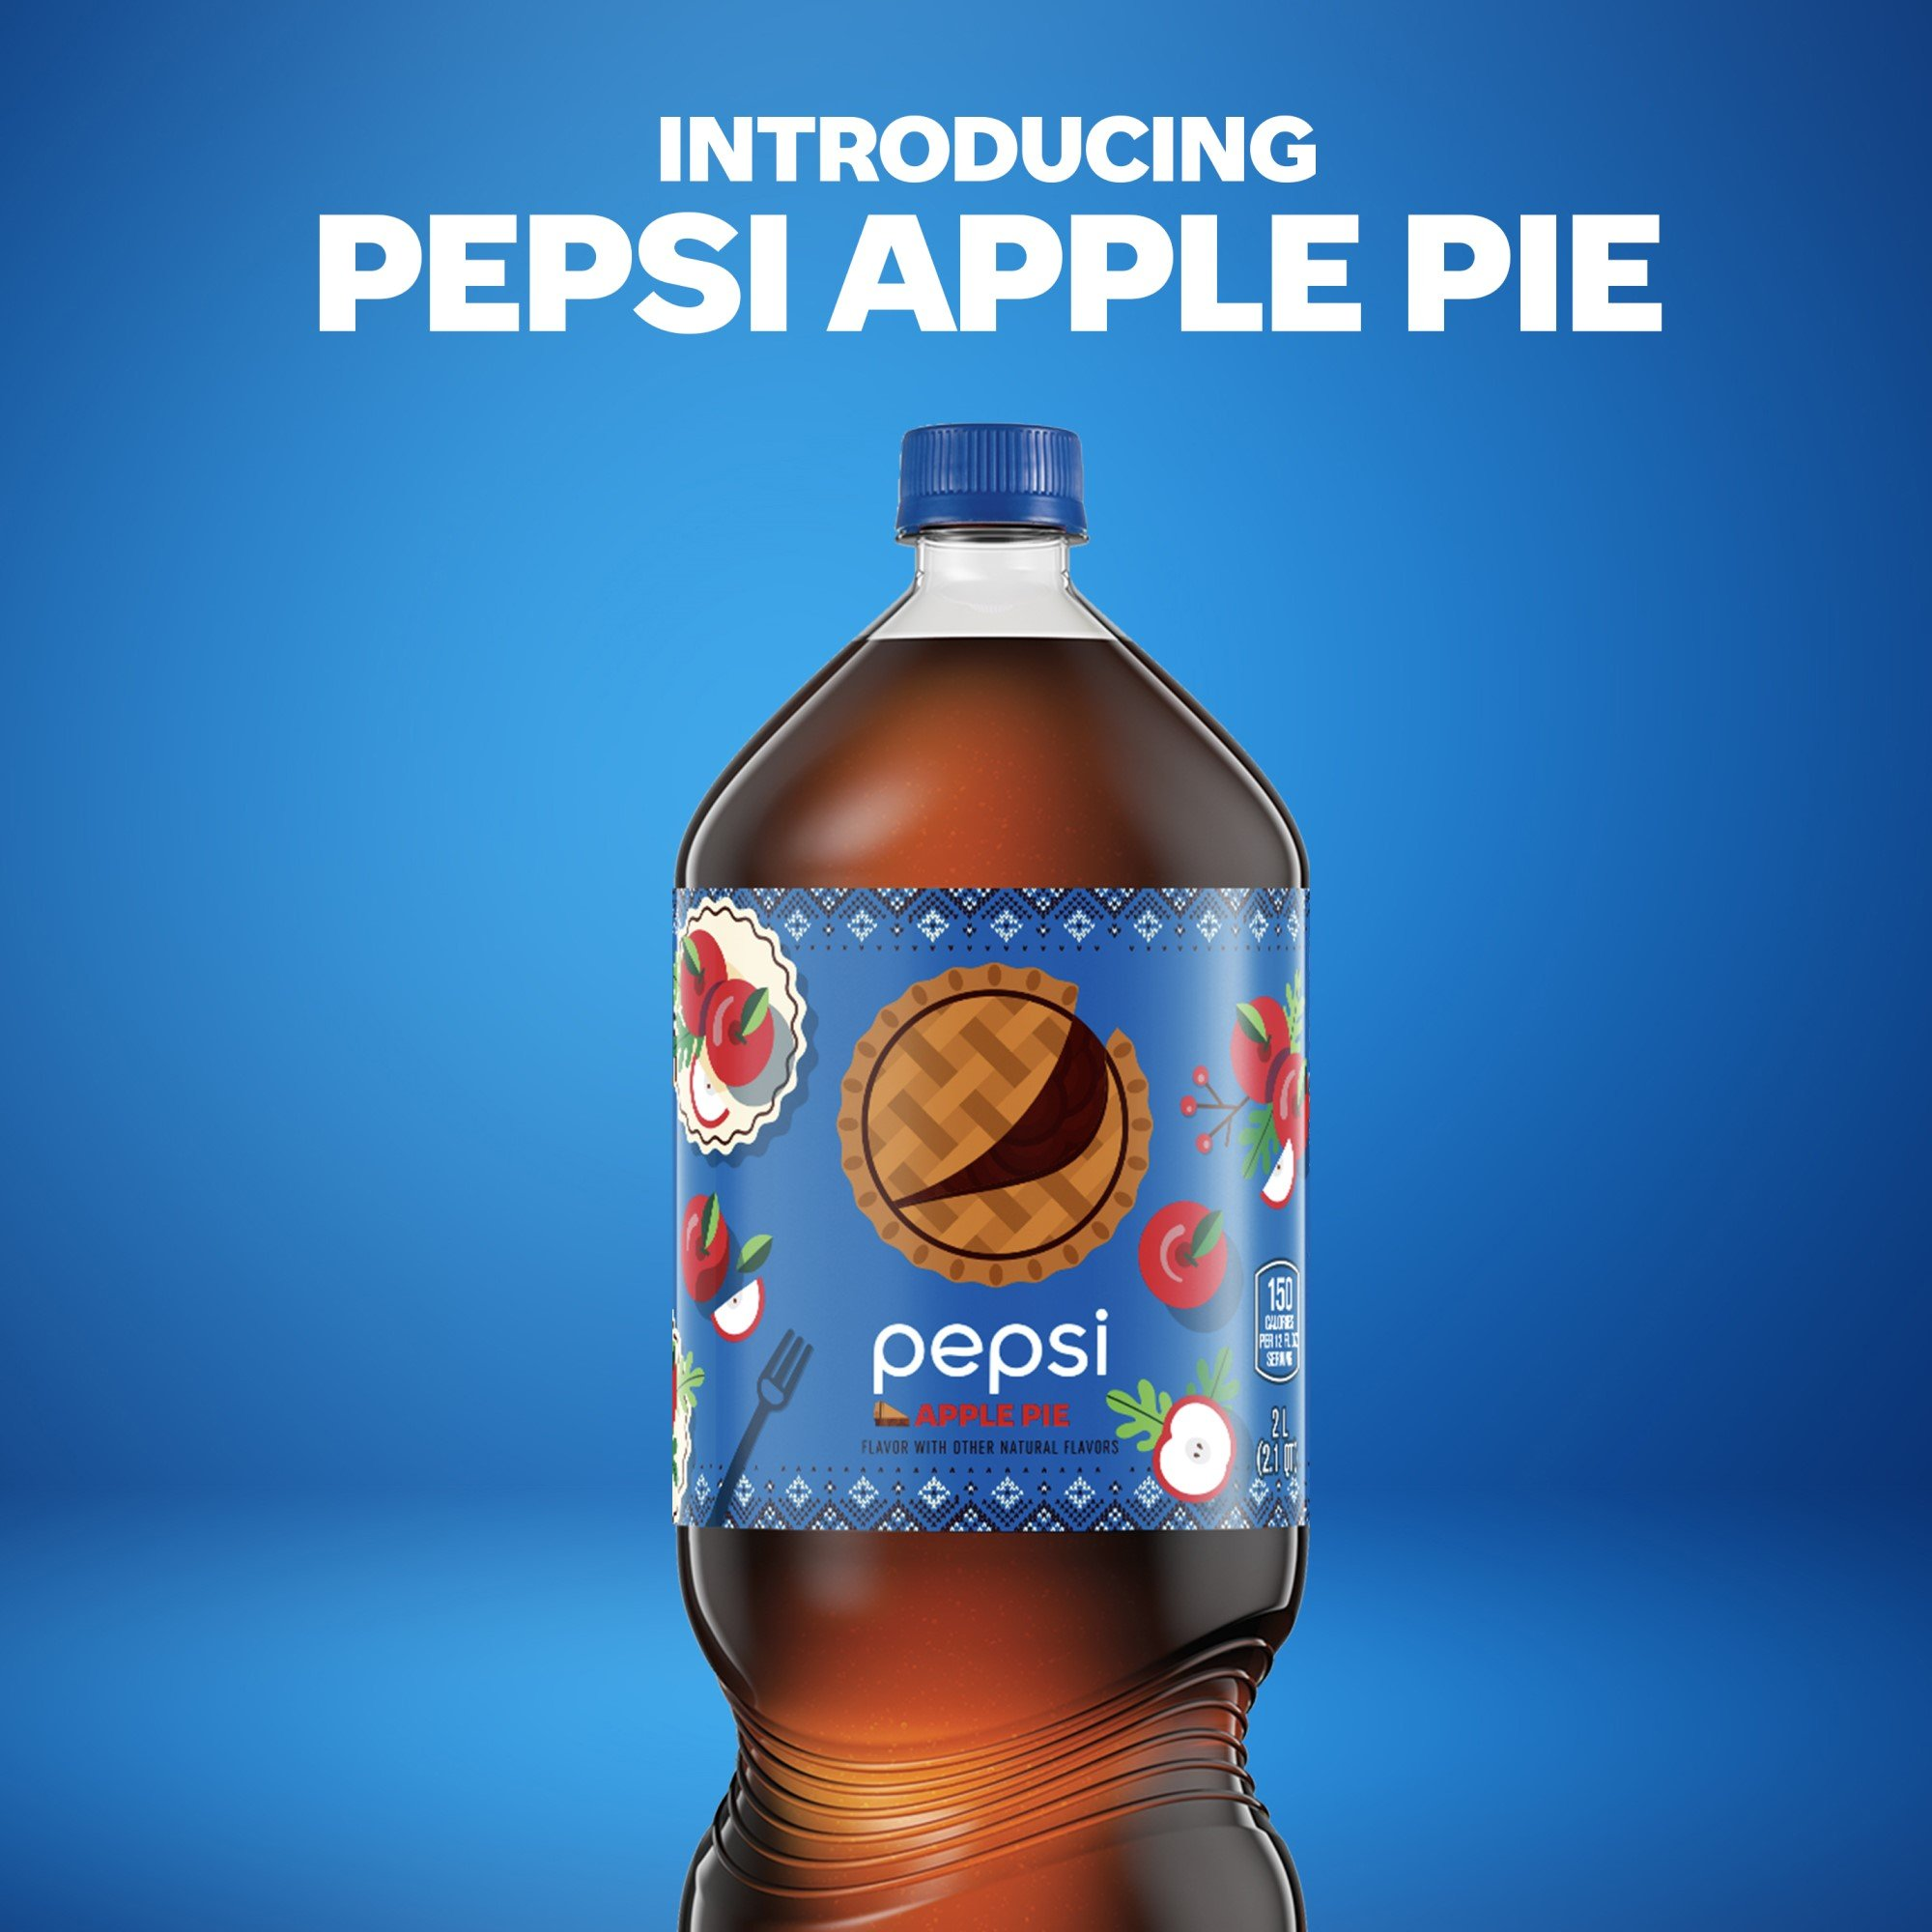 Pepsi is giving away apple pie-flavored cola and here's how you can get one 13